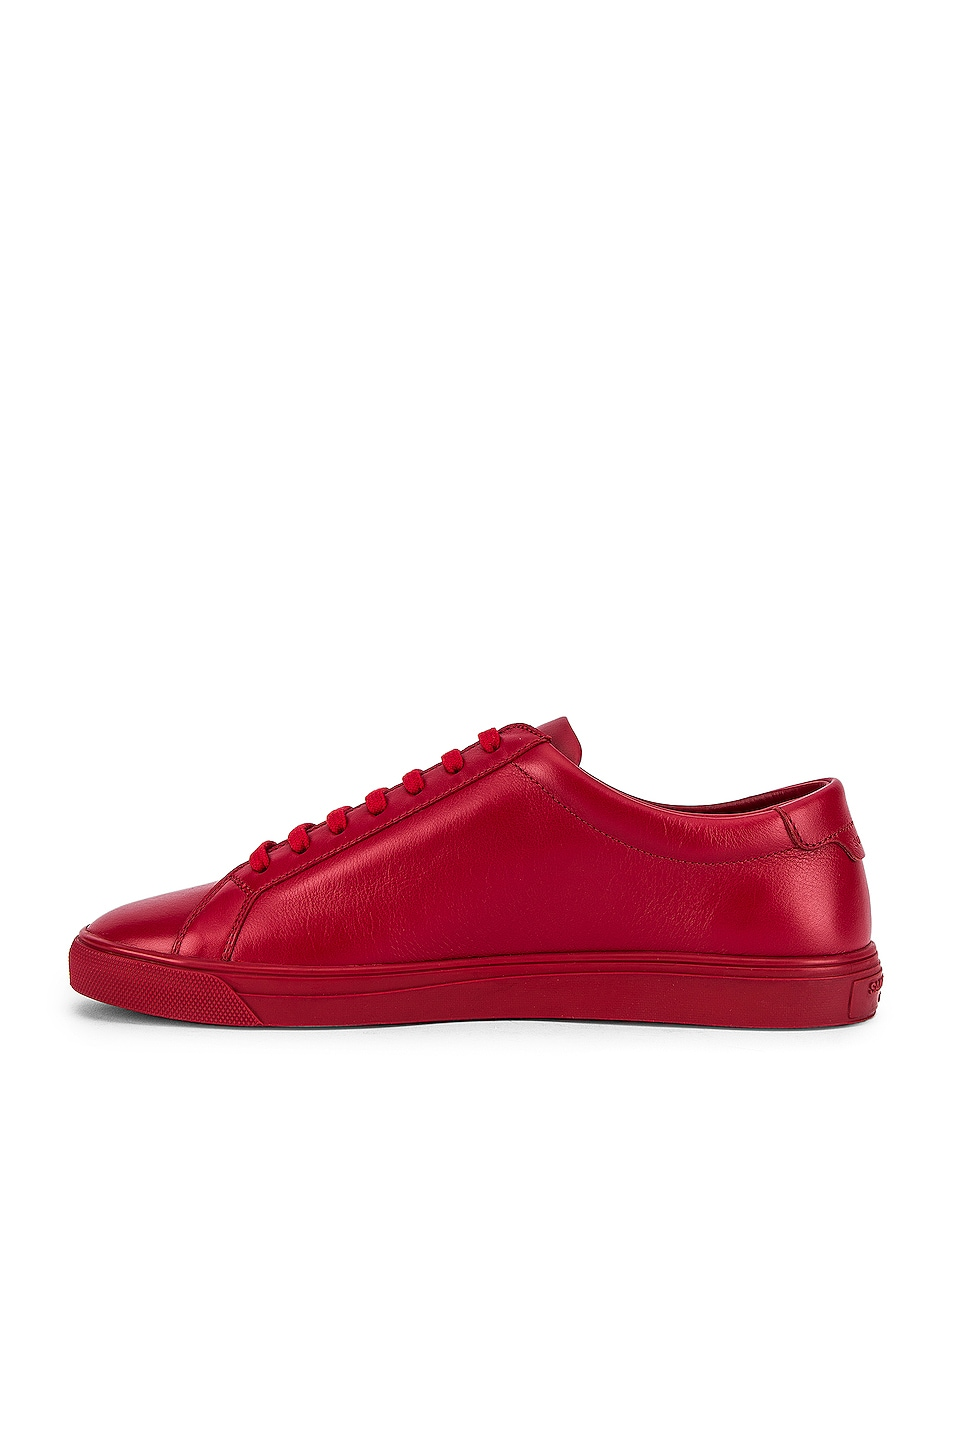 Image 5 of Saint Laurent Andy Low Top Sneakers in Red